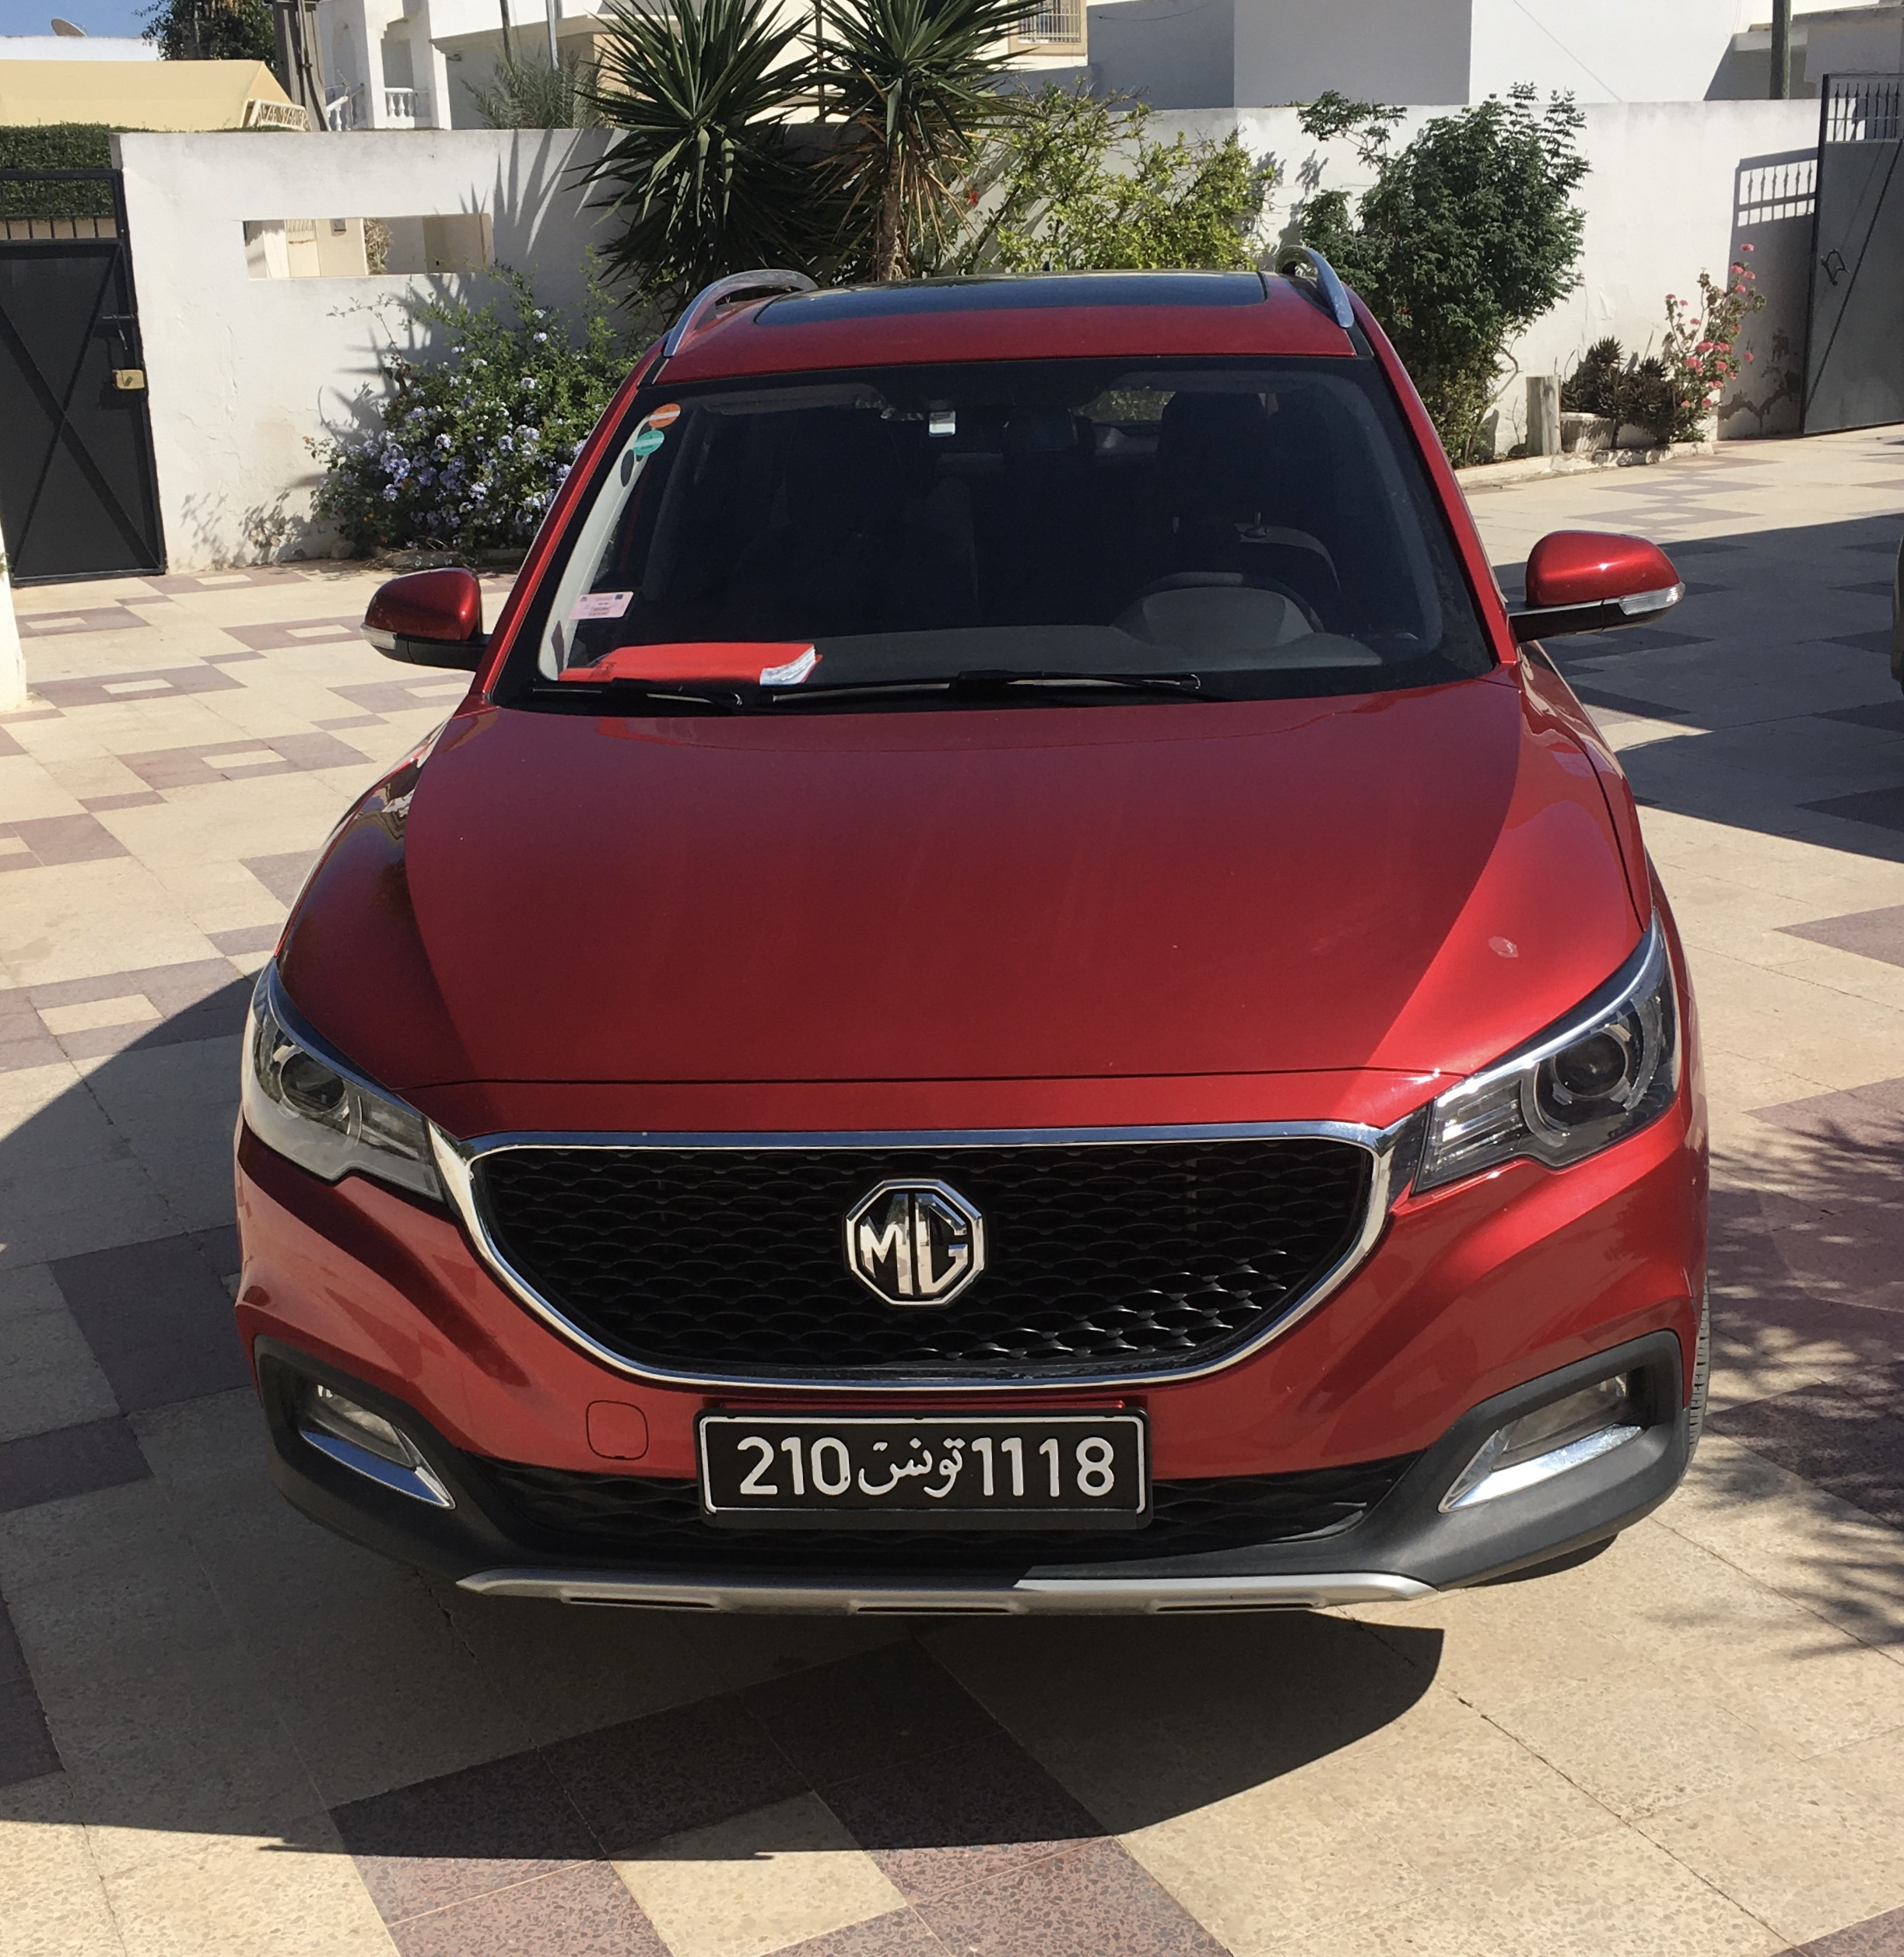 vente voiture occasion tunisie mg zs